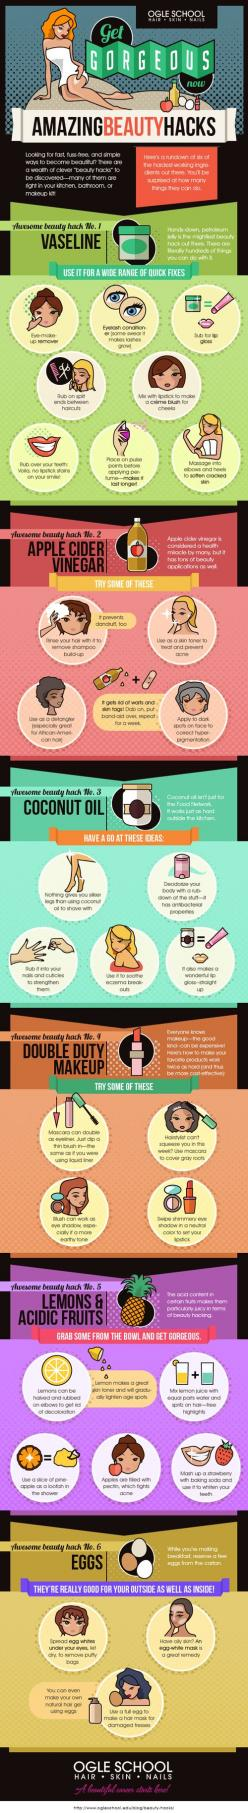 Get Gorgeous Now: Six Amazing Beauty Hacks [Infographic] on imgfave: Amazing Beauty, Beauty Tips, Beauty Hacks, Life Hack, Beauty Infographic, Beauty Diy